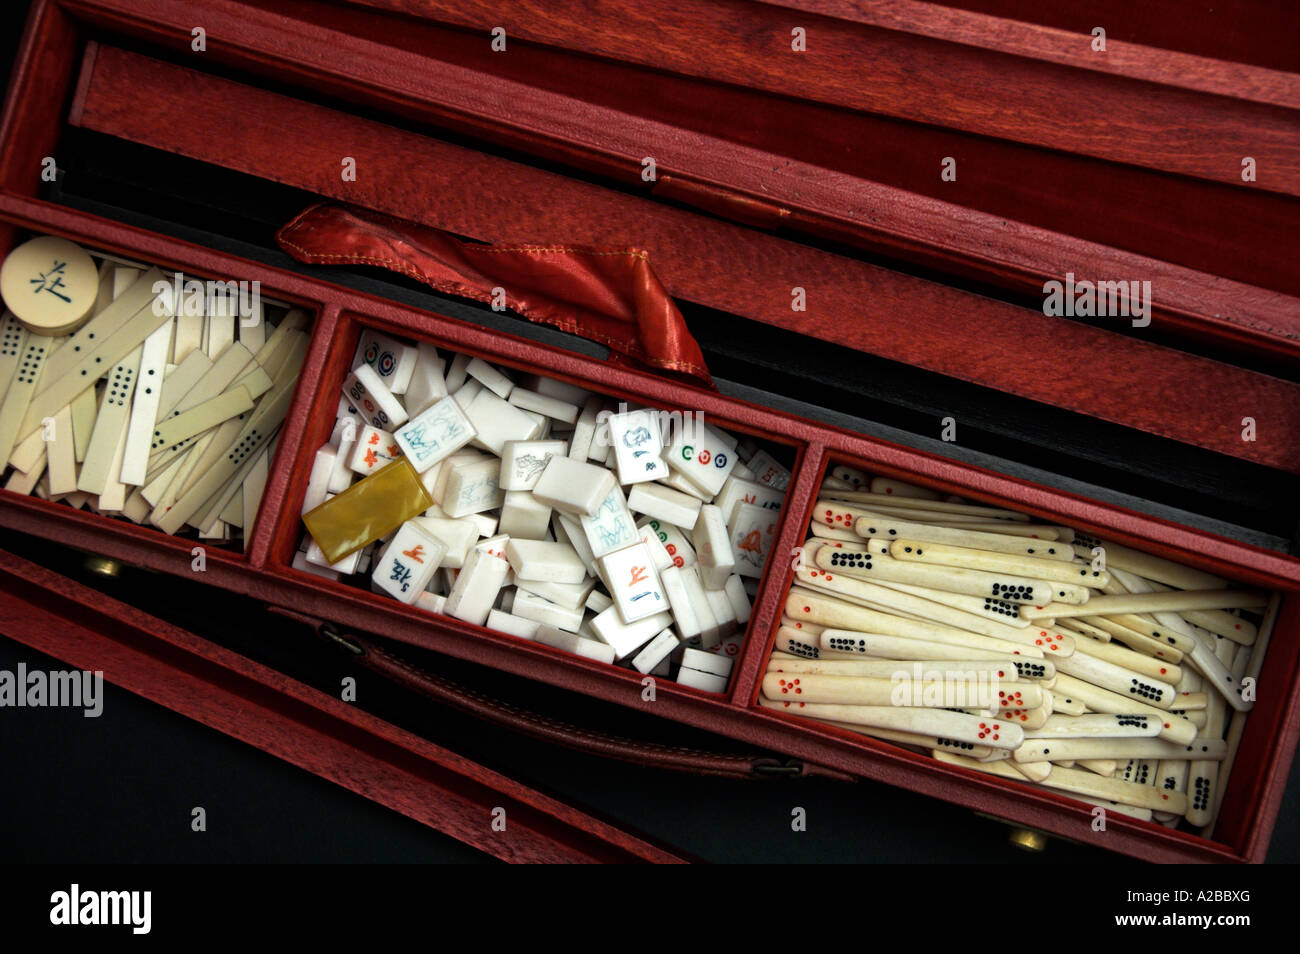 An early 20th century MahJong Set - Stock Image